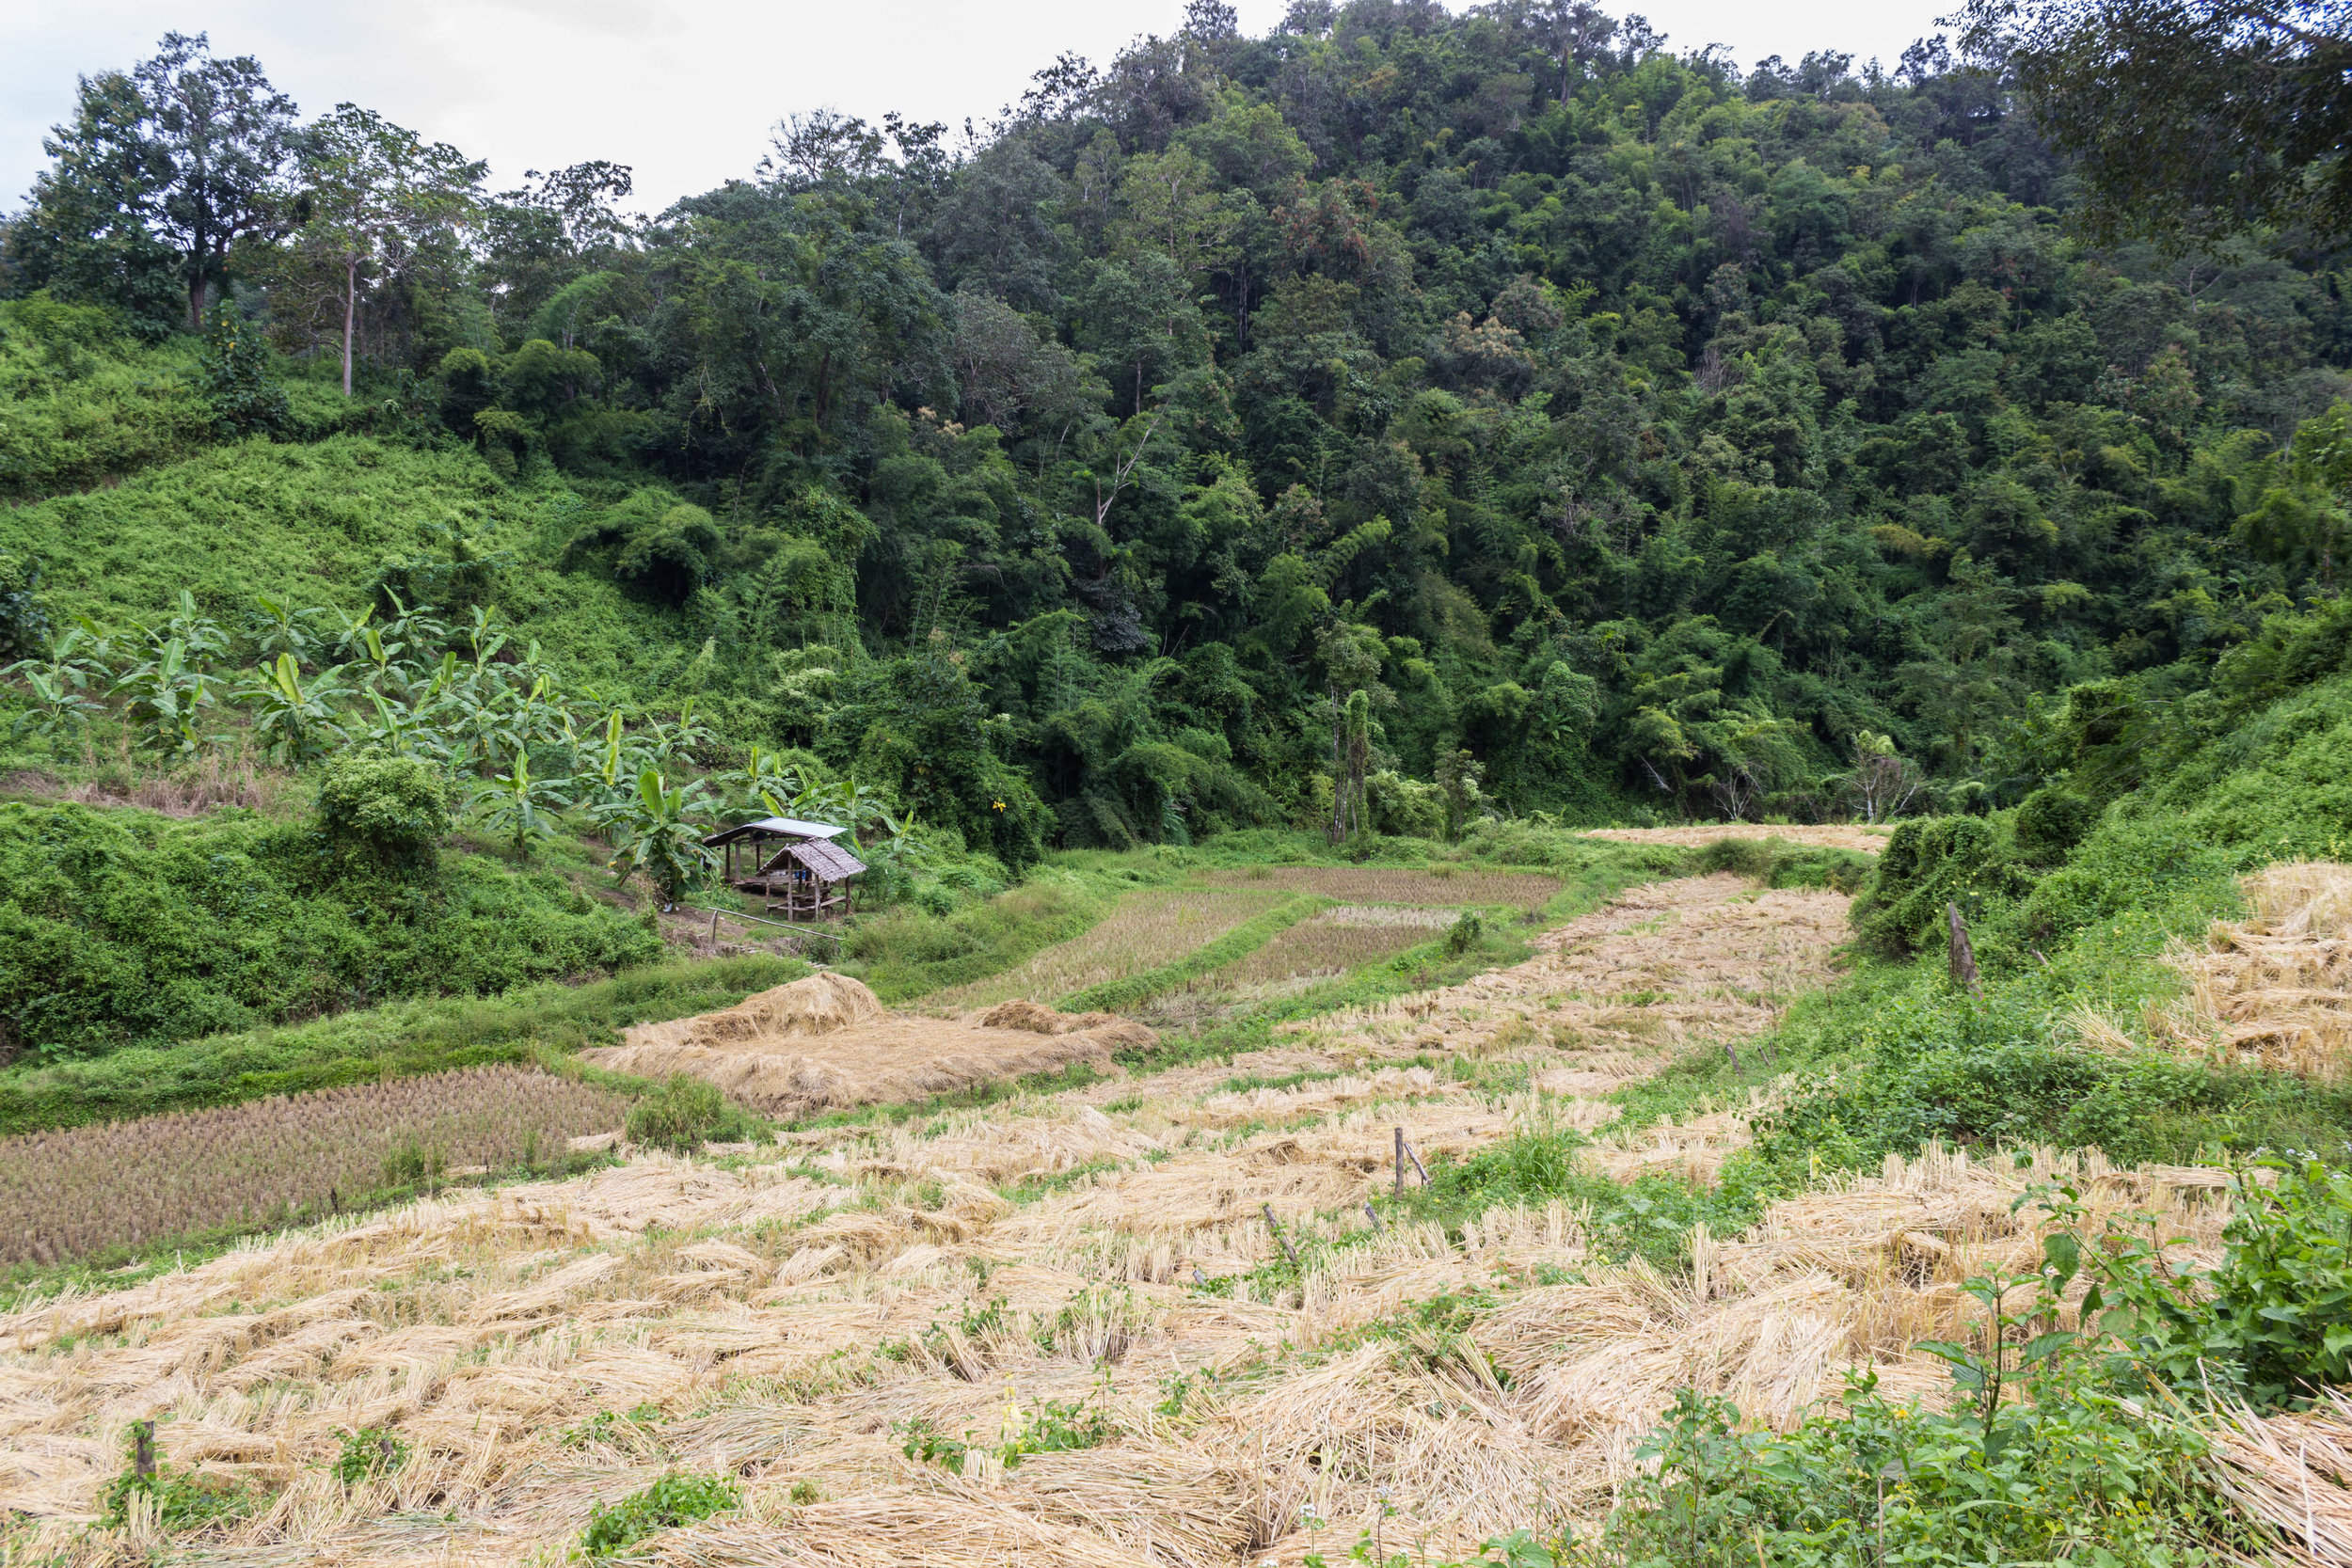 A harvested rice field we hiked through during our trek